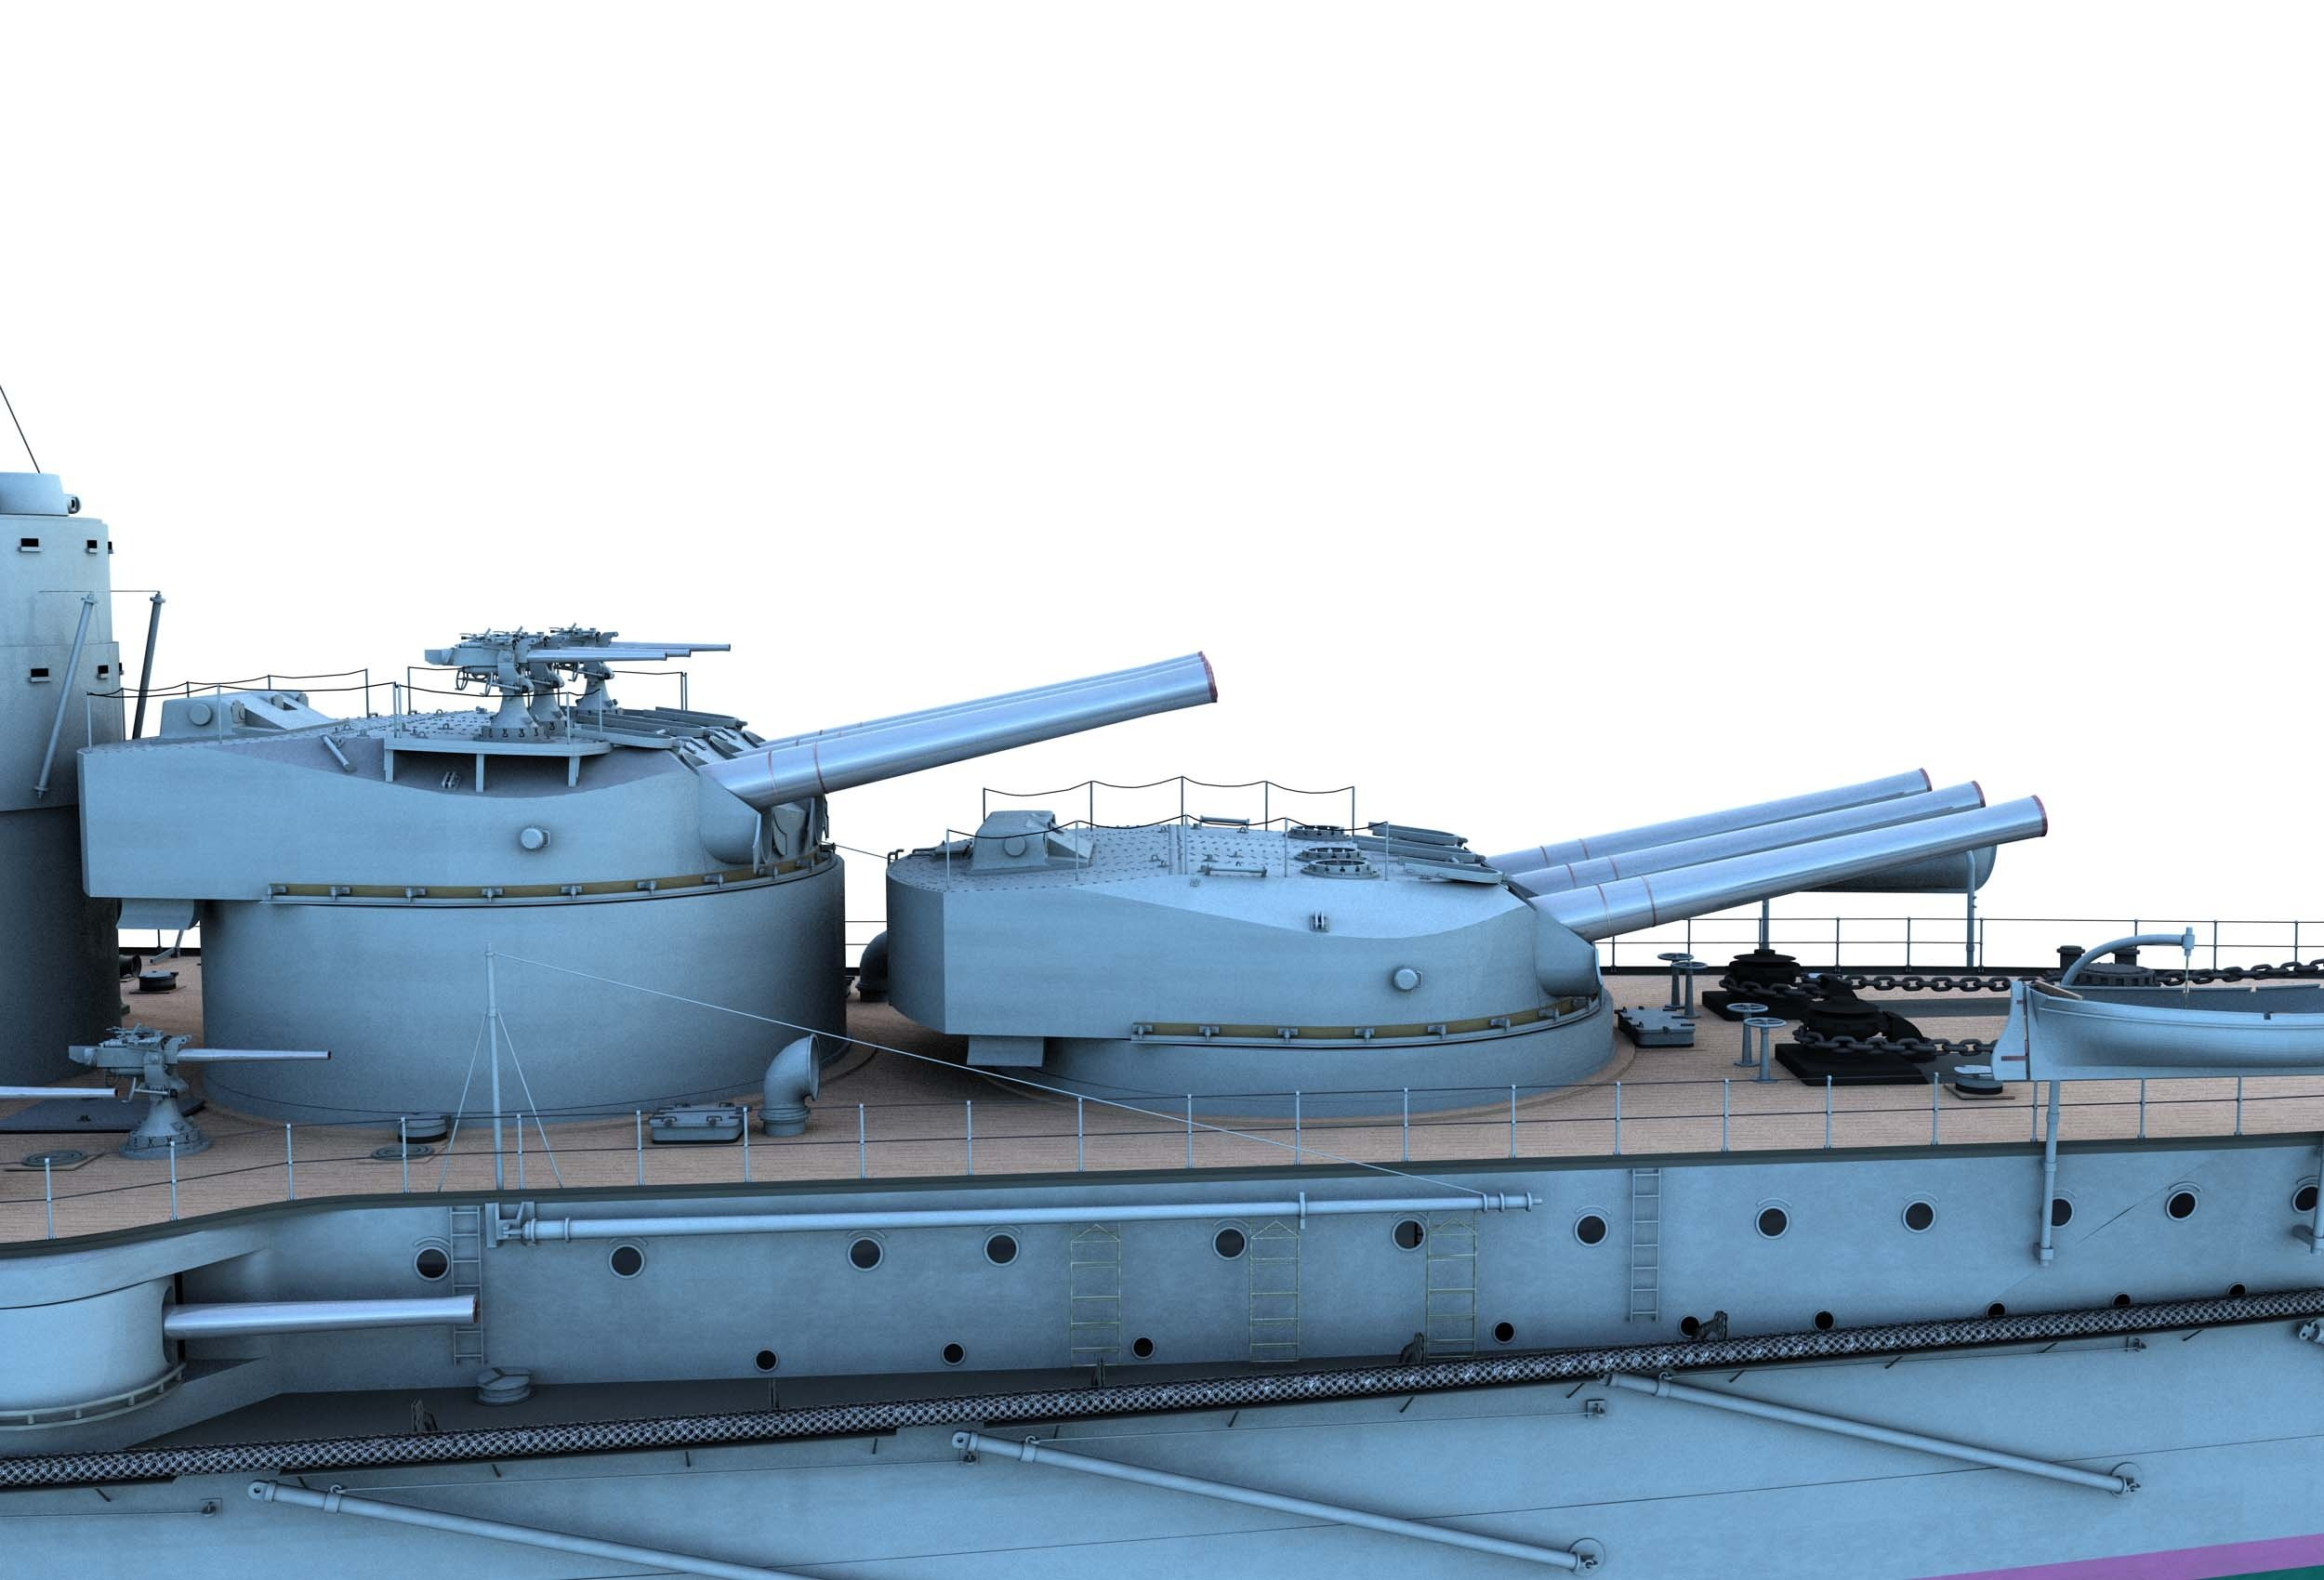 https://0901.nccdn.net/4_2/000/000/07a/dbb/CK35-Partial-Ship-Starboard-Profile-Turrets-I-and-II-2500x1700.jpg